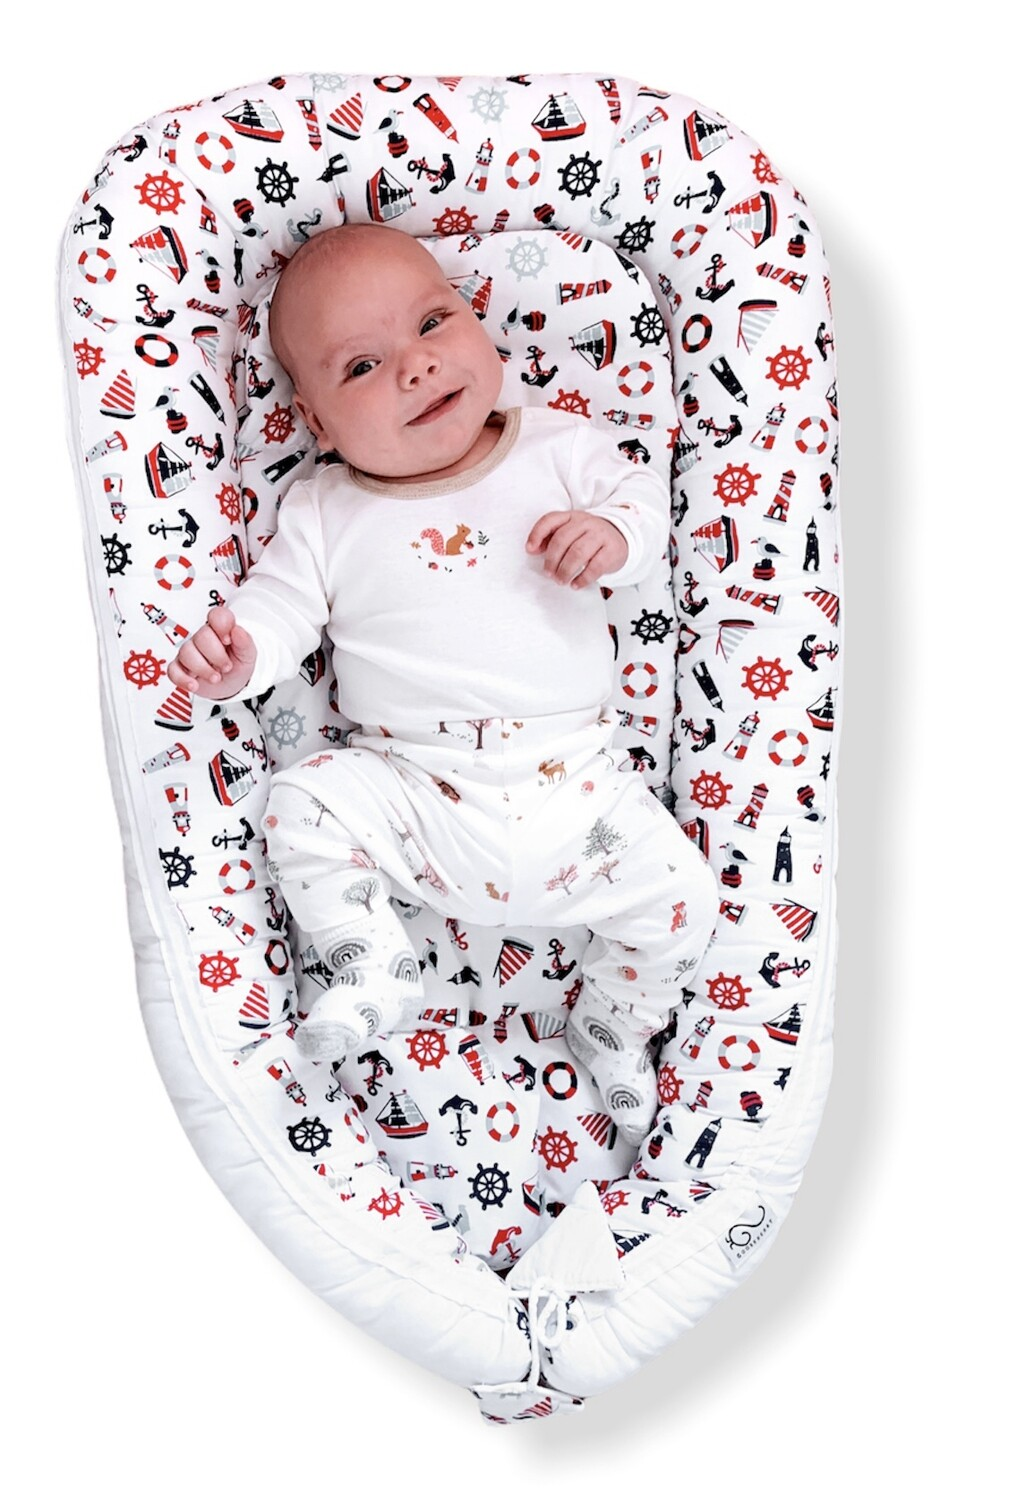 Baby Nest Day Bed Lounger Nautical